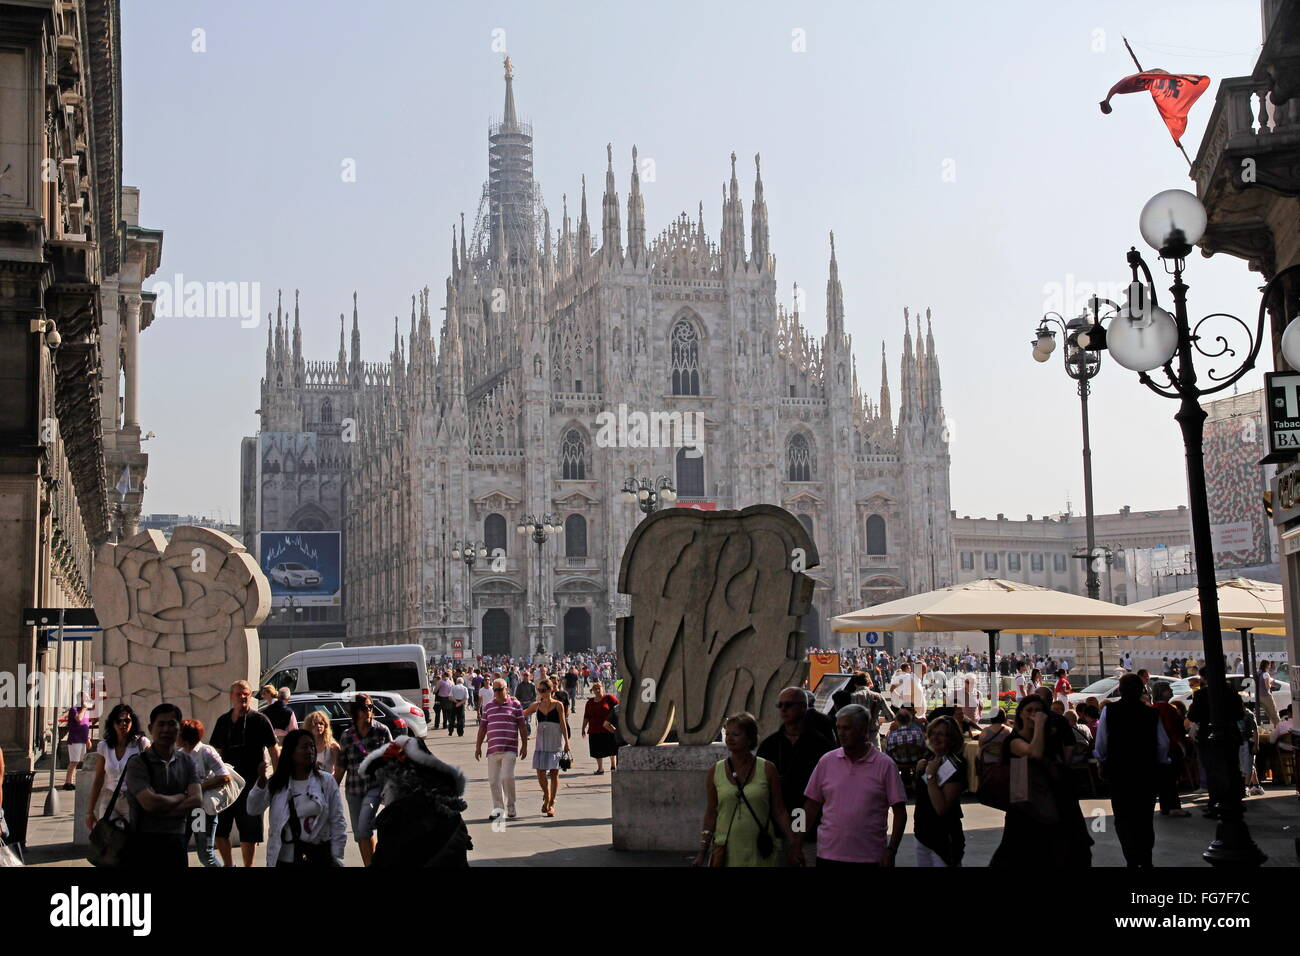 geography / travel, Italy, Lombardy, Milan, Milanese cathedral Santa Maria Nascente, cathedral square, Additional - Stock Image